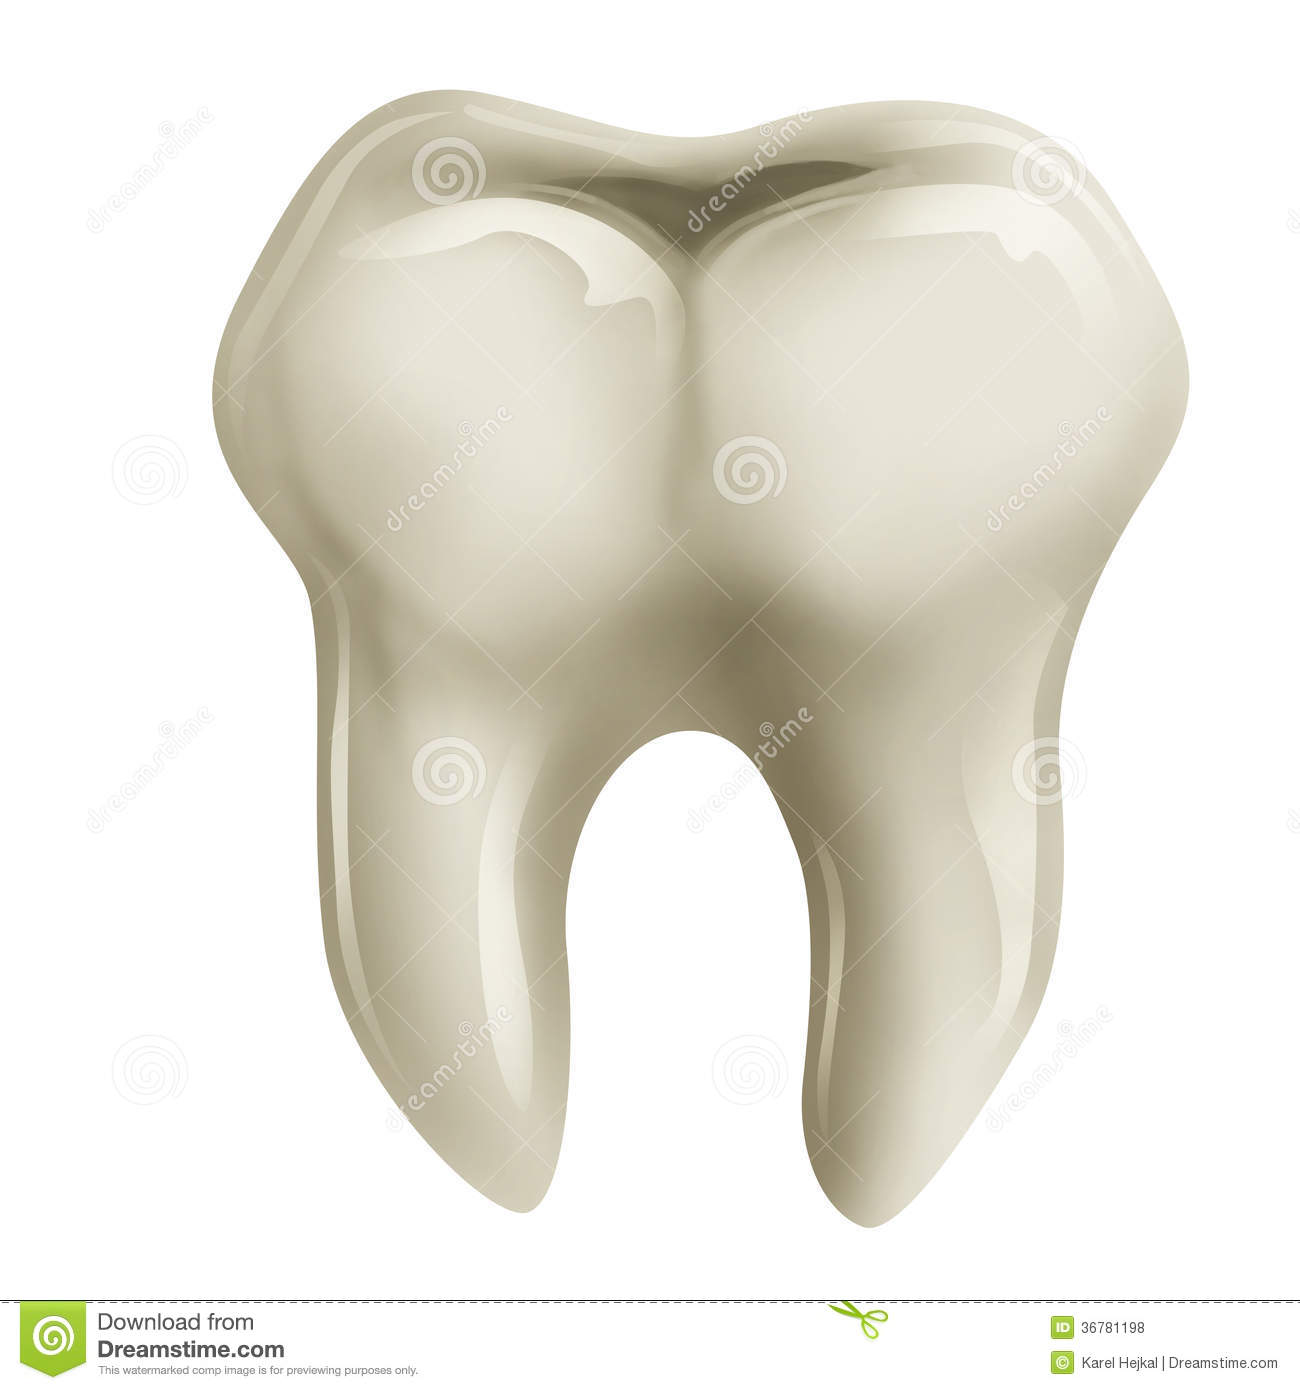 Hand Drawn Illustration Of A Molar Tooth